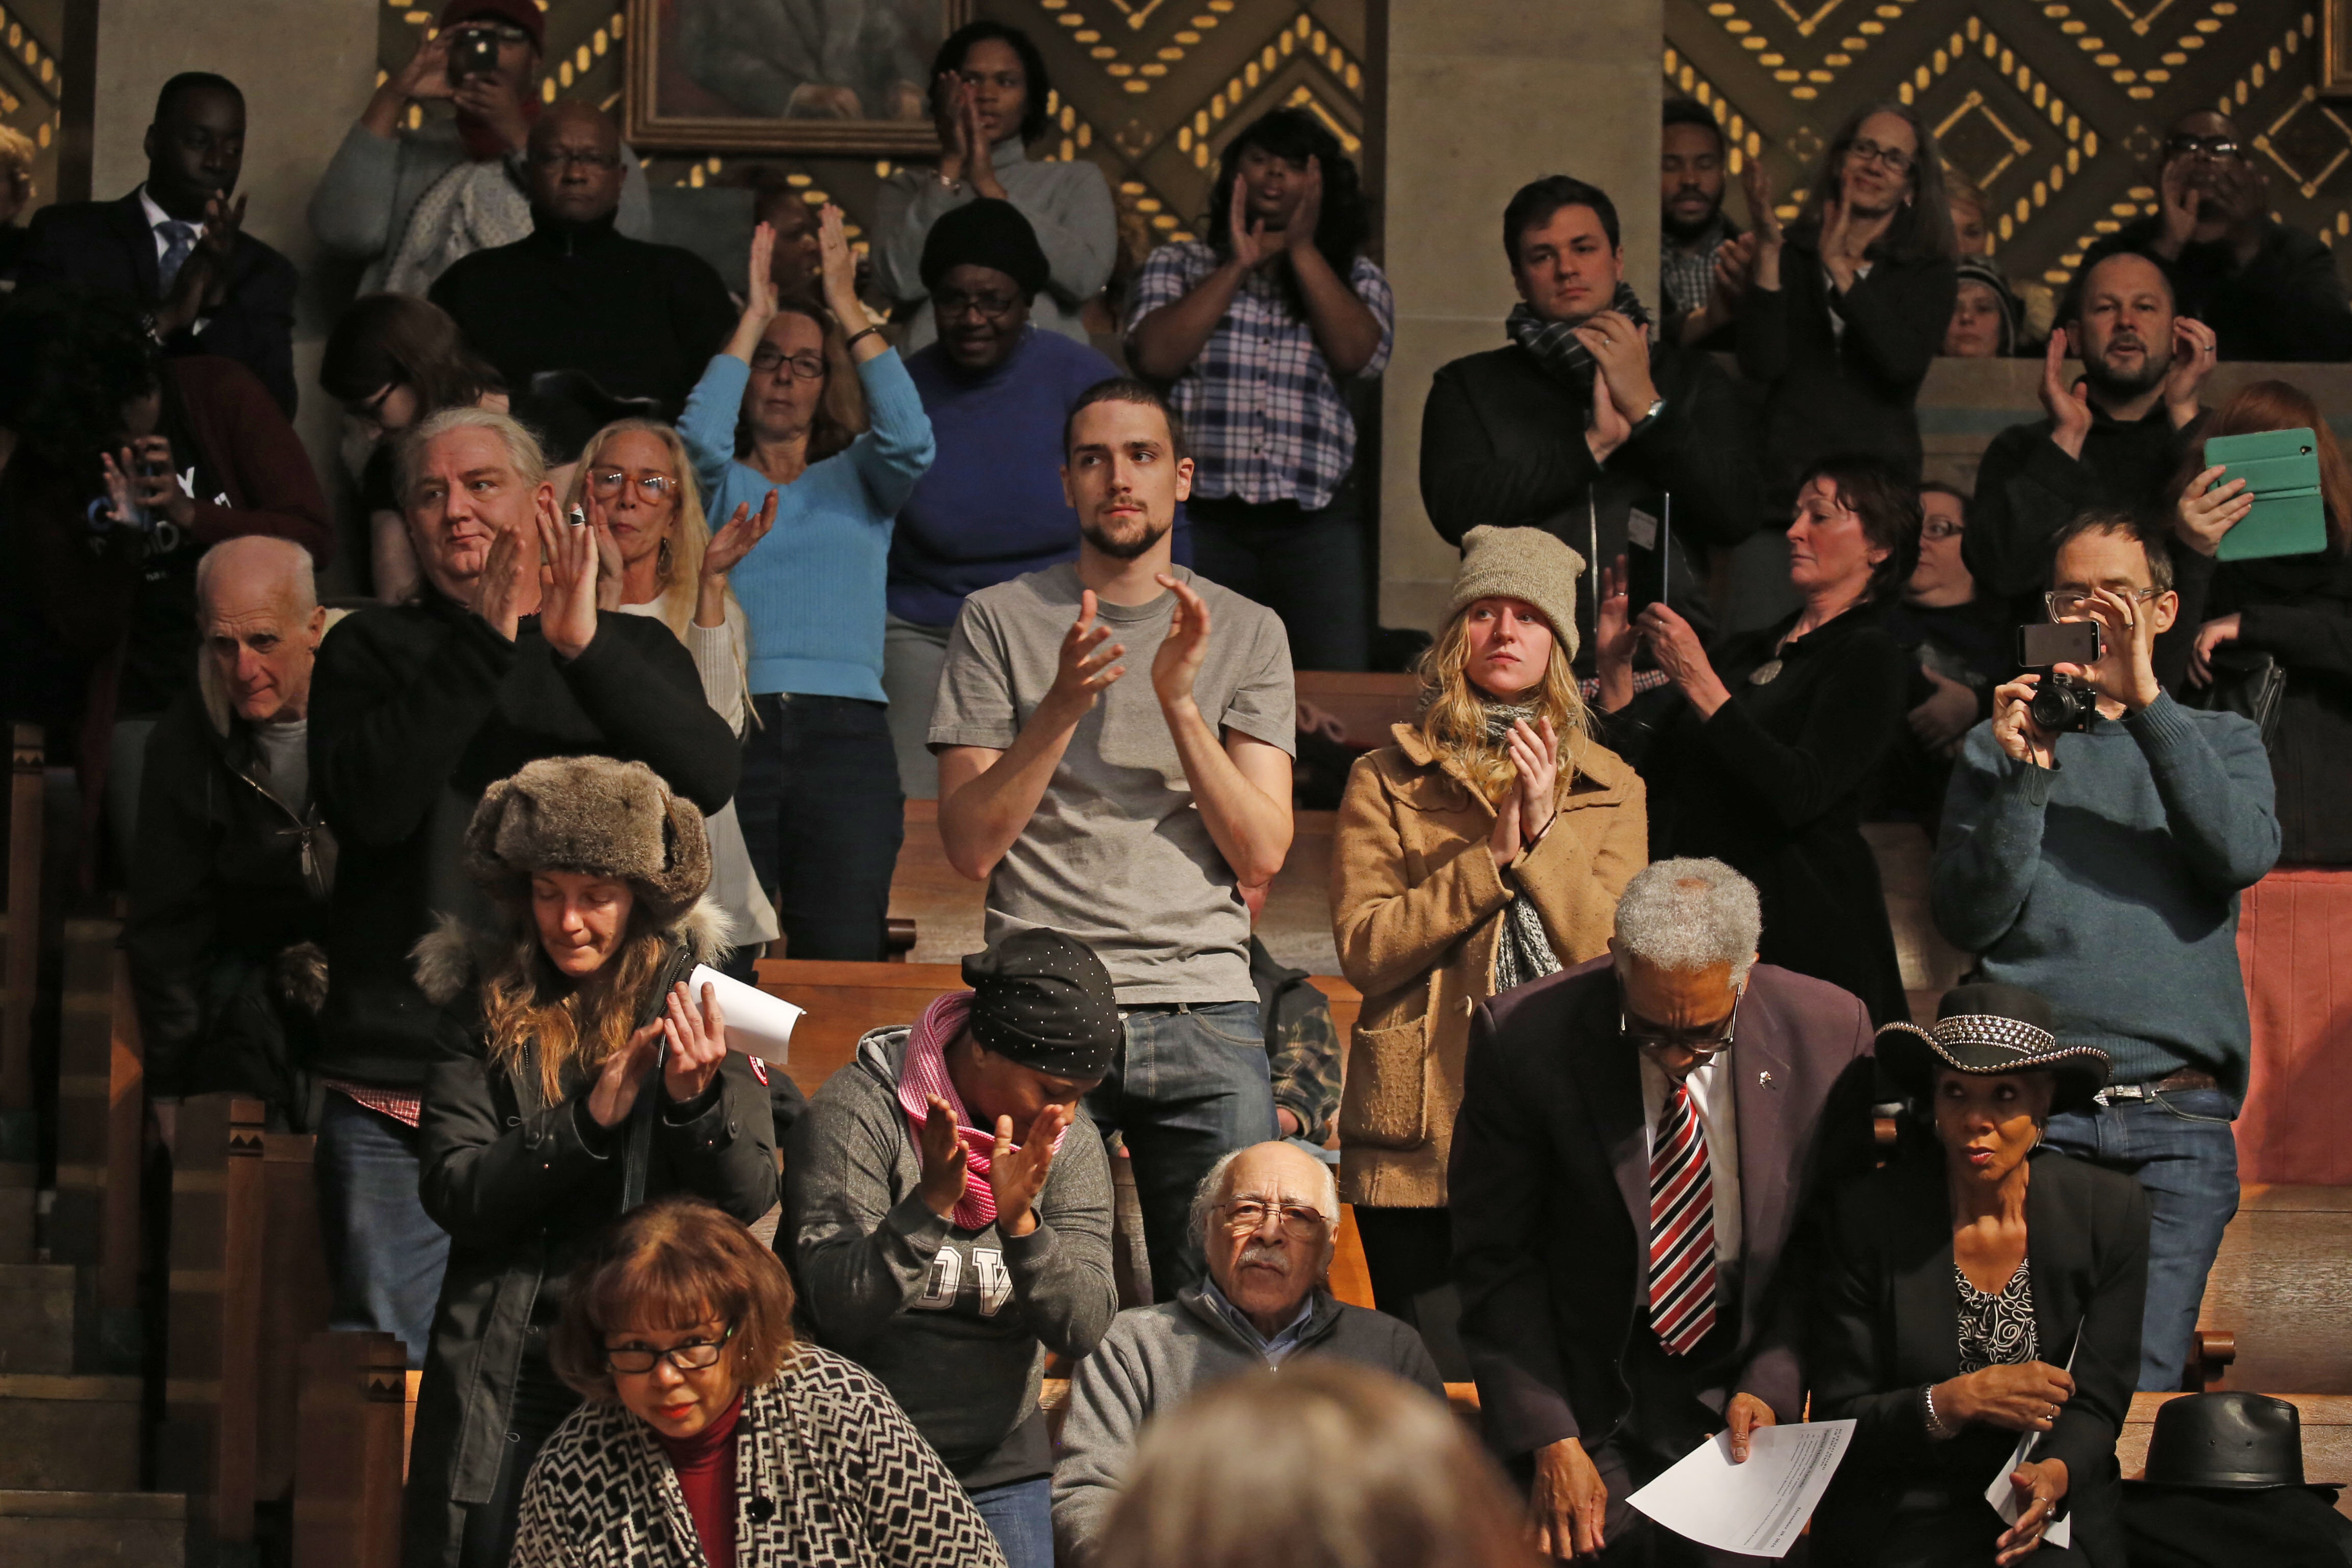 Audience members applaud after the Buffalo School Board requested the resignation of Carl Paladino in the Buffalo City Council chambers  on Thursday, Dec. 29, 2016.  (Robert Kirkham/Buffalo News)